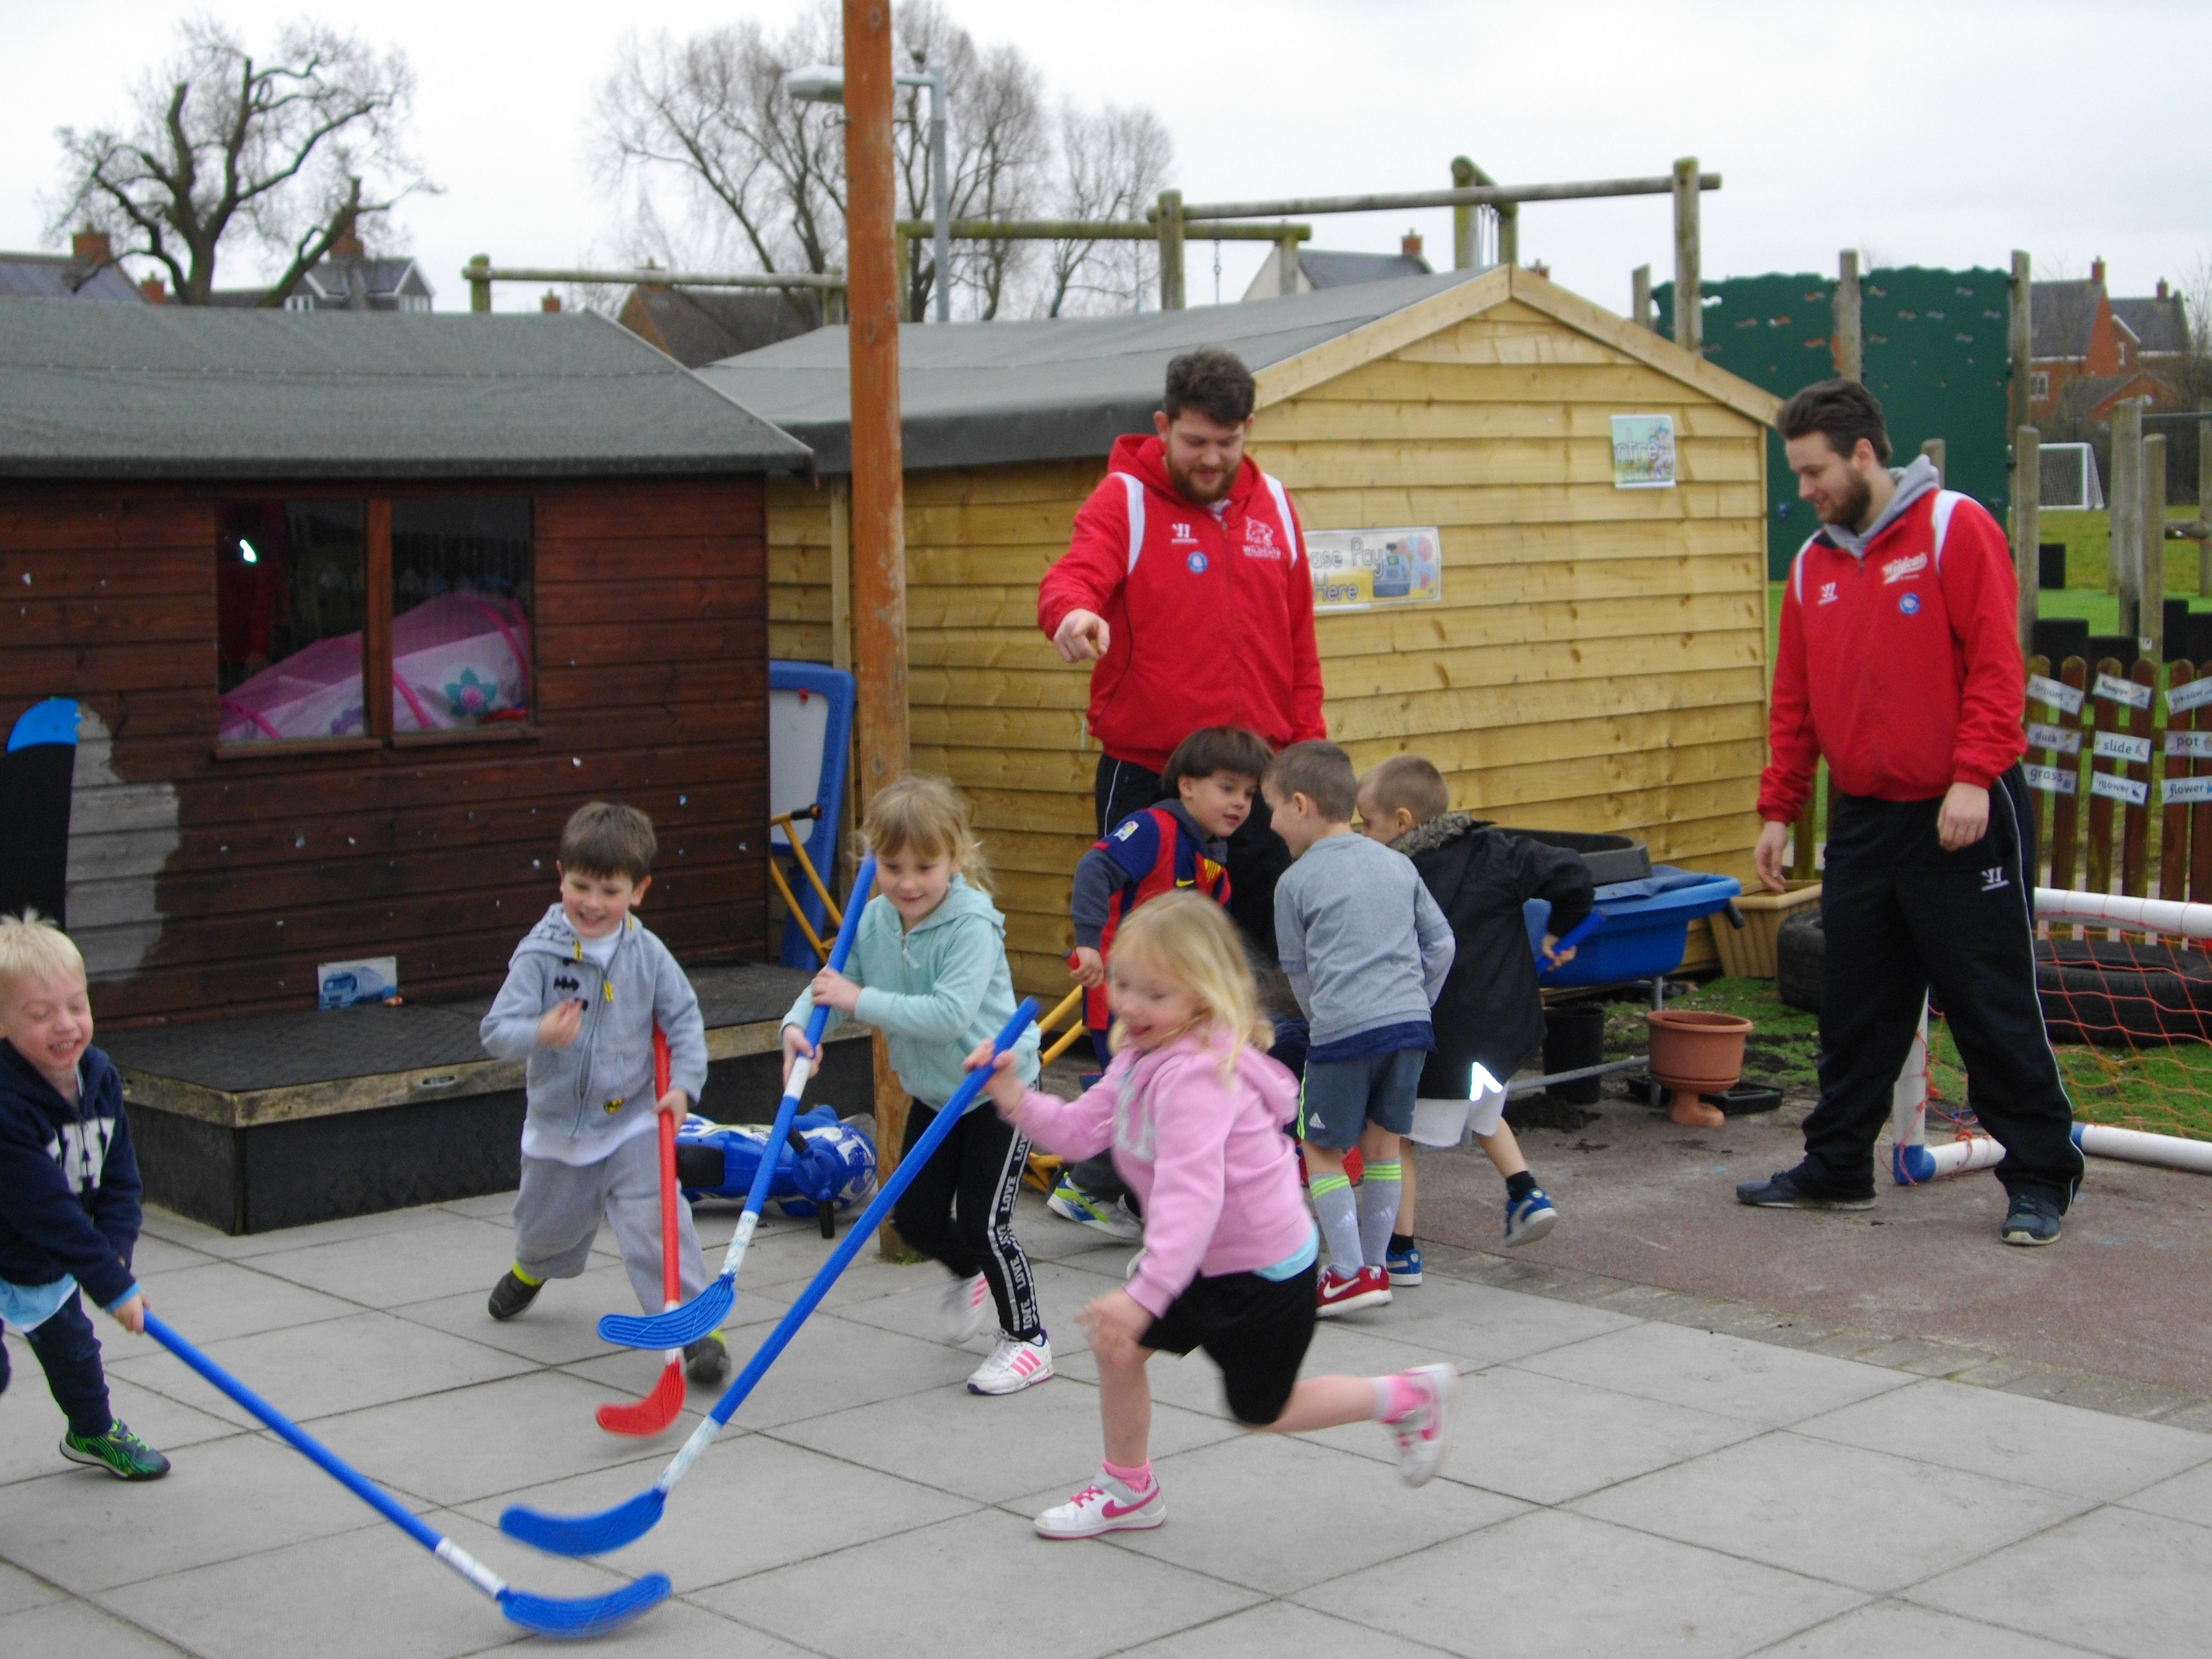 Swindon Wildcats in the community